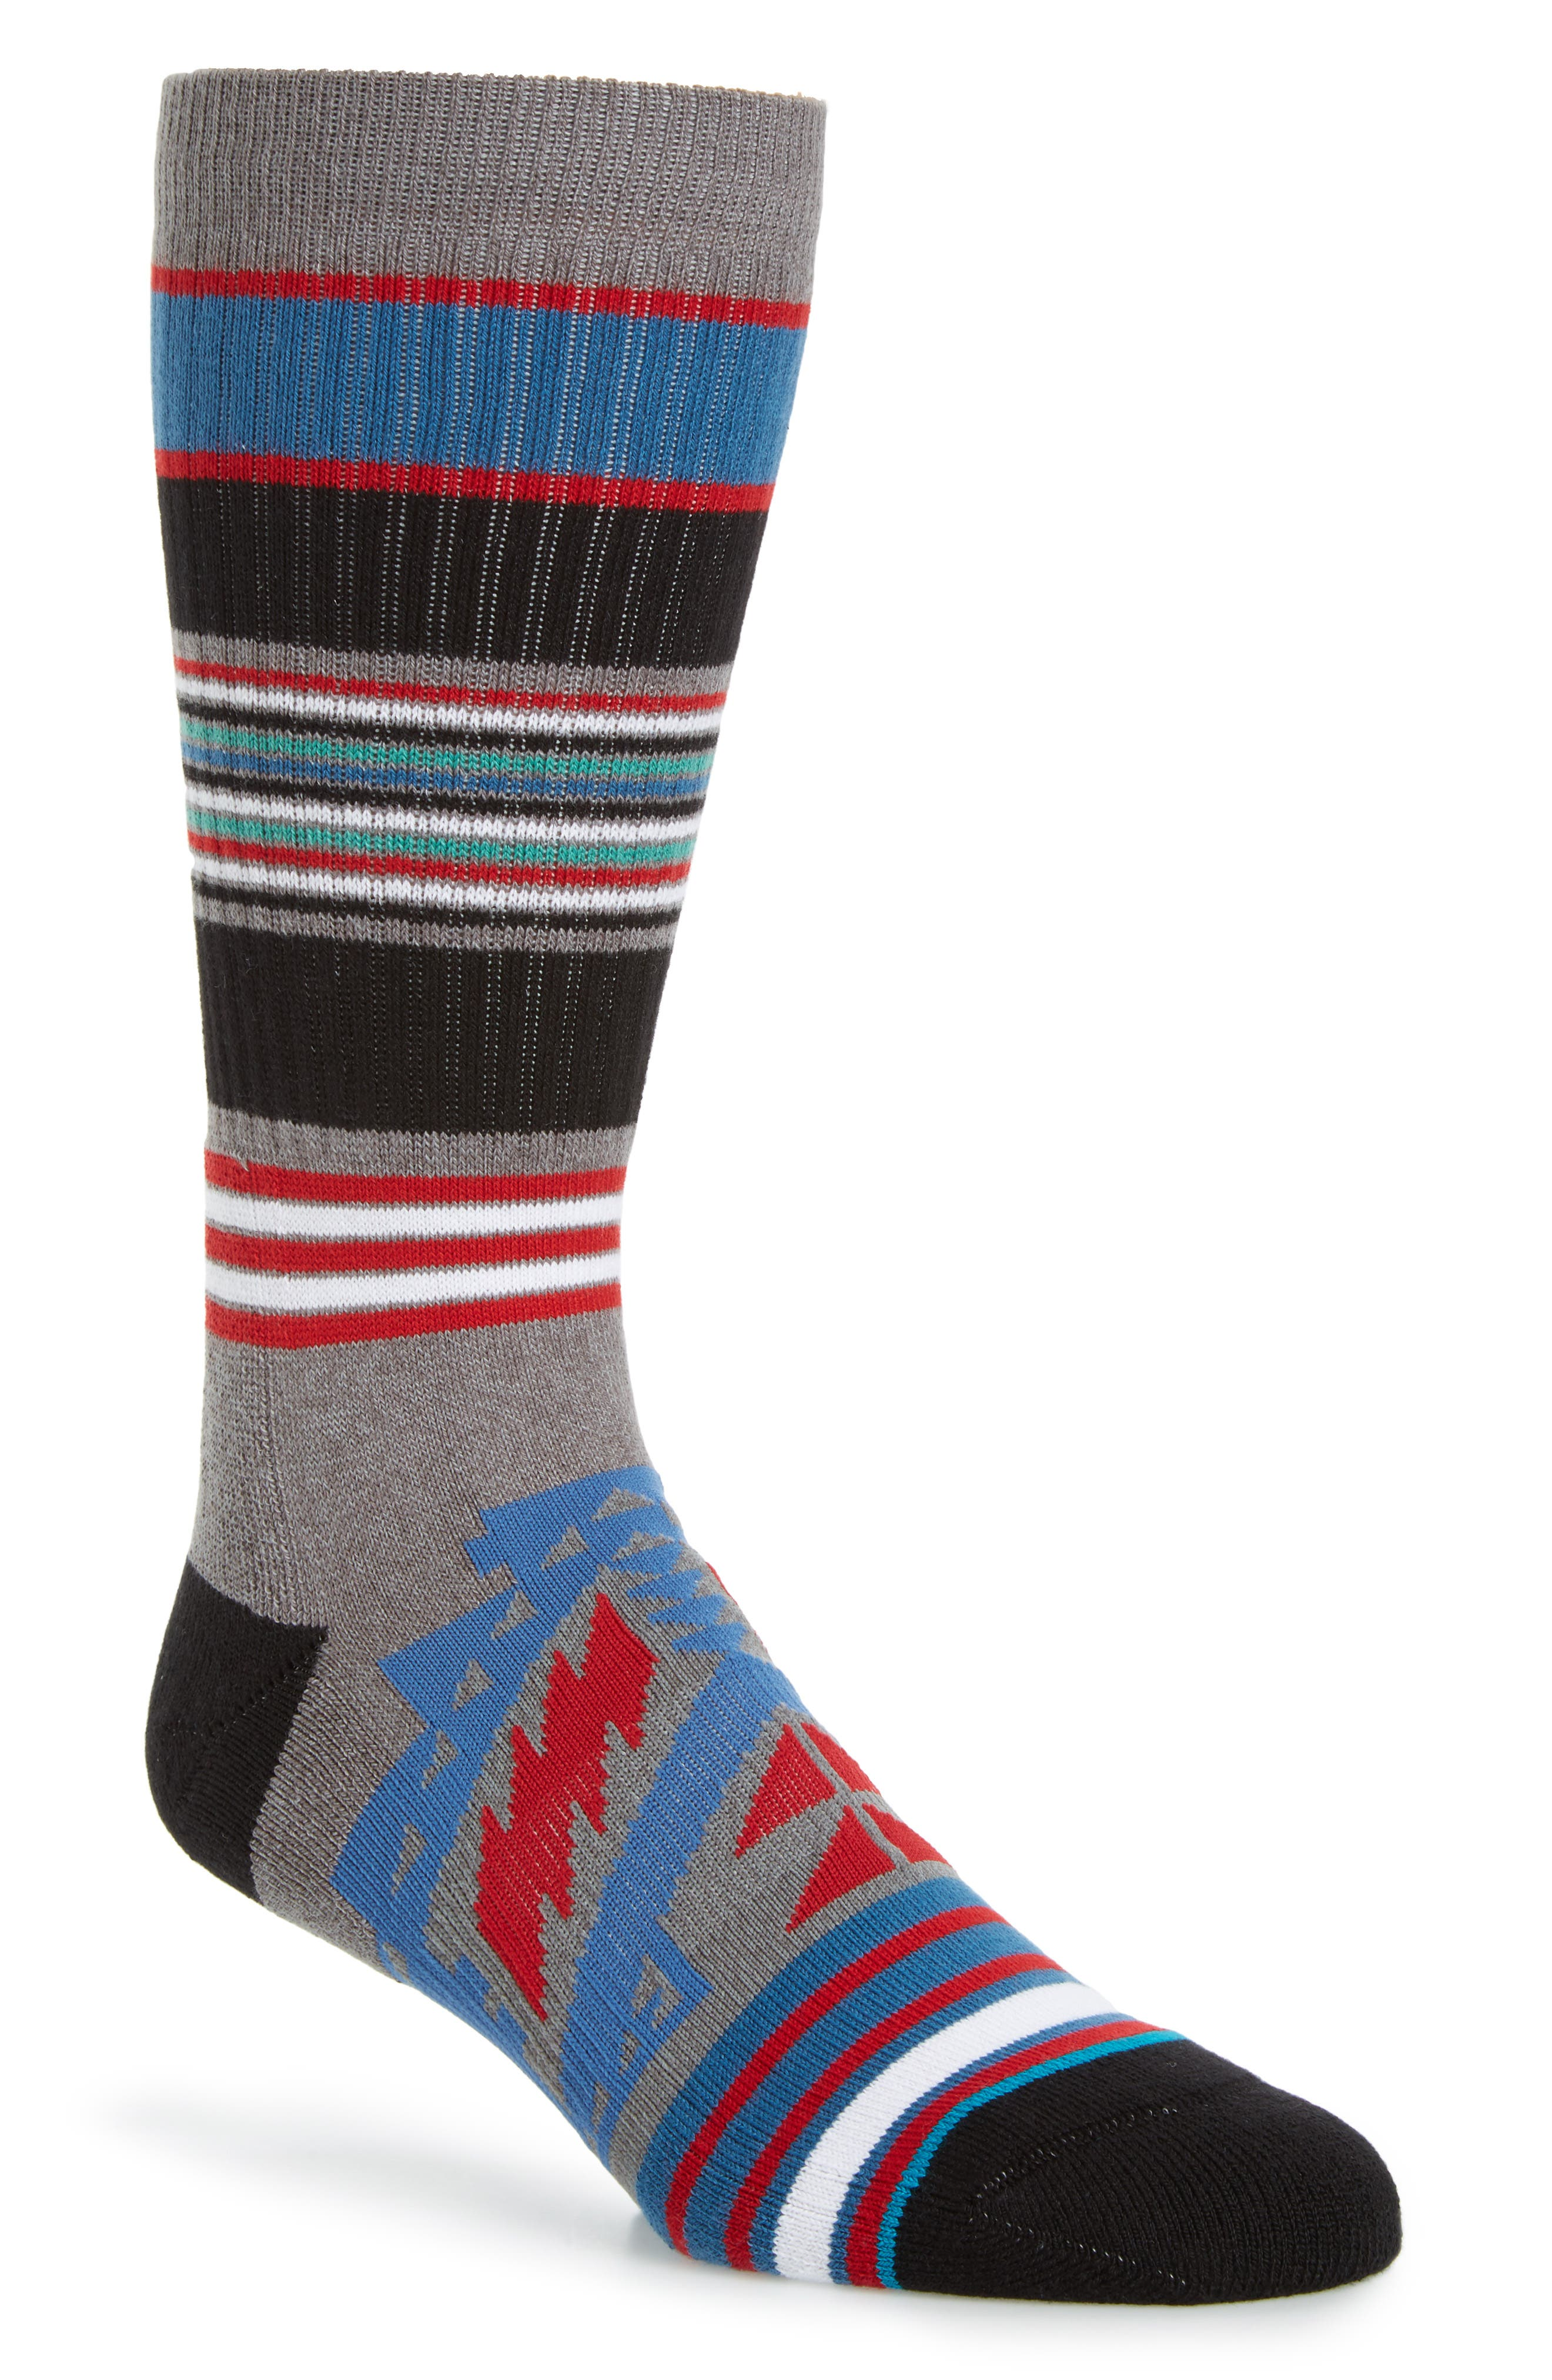 Alternate Image 1 Selected - Stance Sparta Classic Crew Socks